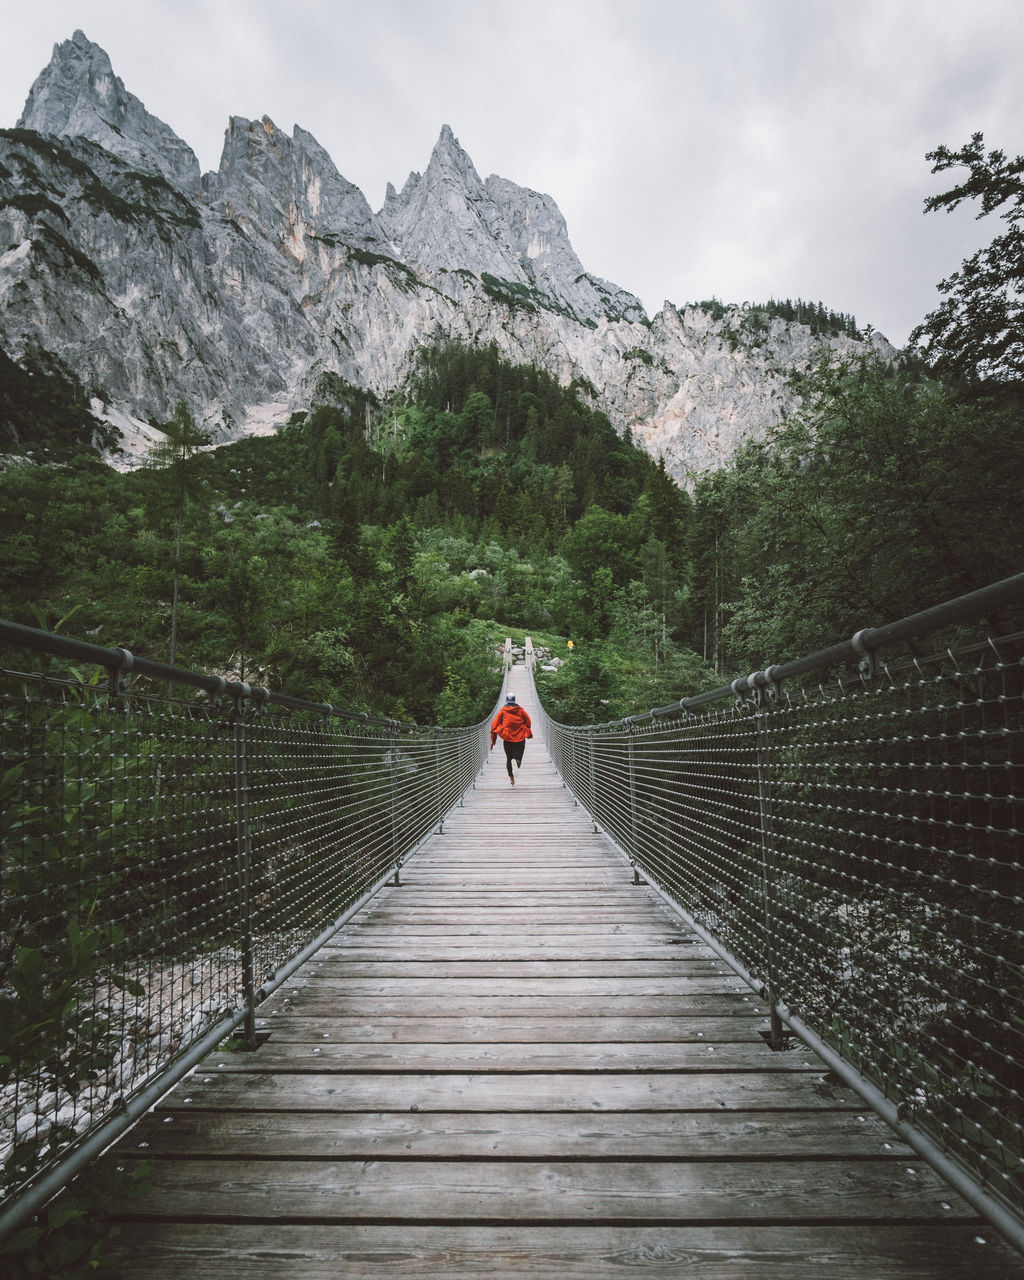 mountain, one person, rear view, direction, railing, bridge, beauty in nature, real people, scenics - nature, the way forward, footbridge, connection, nature, architecture, bridge - man made structure, sky, leisure activity, built structure, full length, day, mountain range, diminishing perspective, outdoors